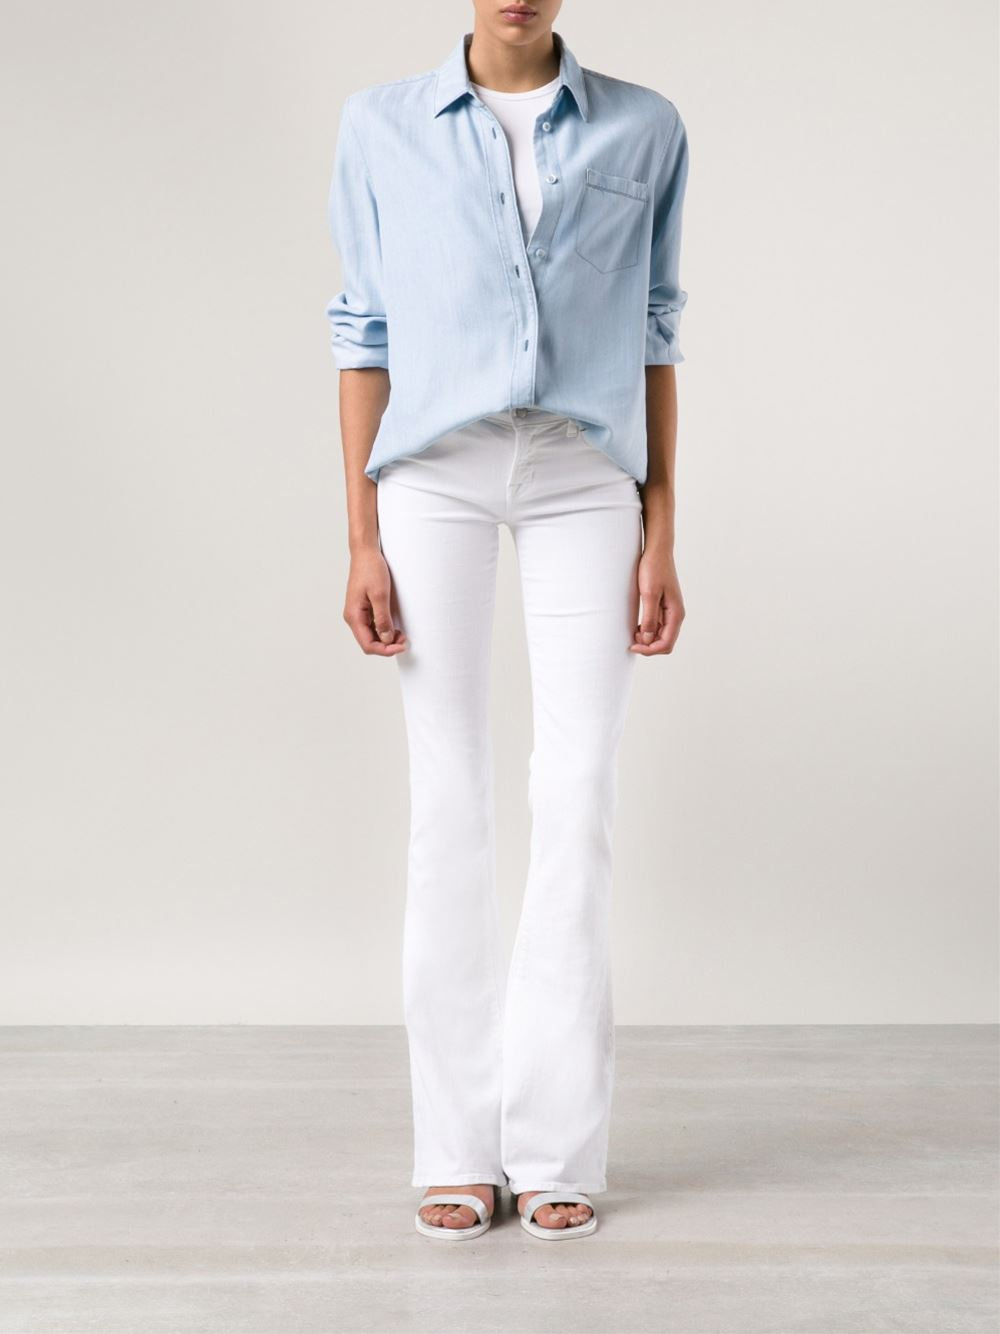 J brand 'Martini' Flare Jeans in White | Lyst